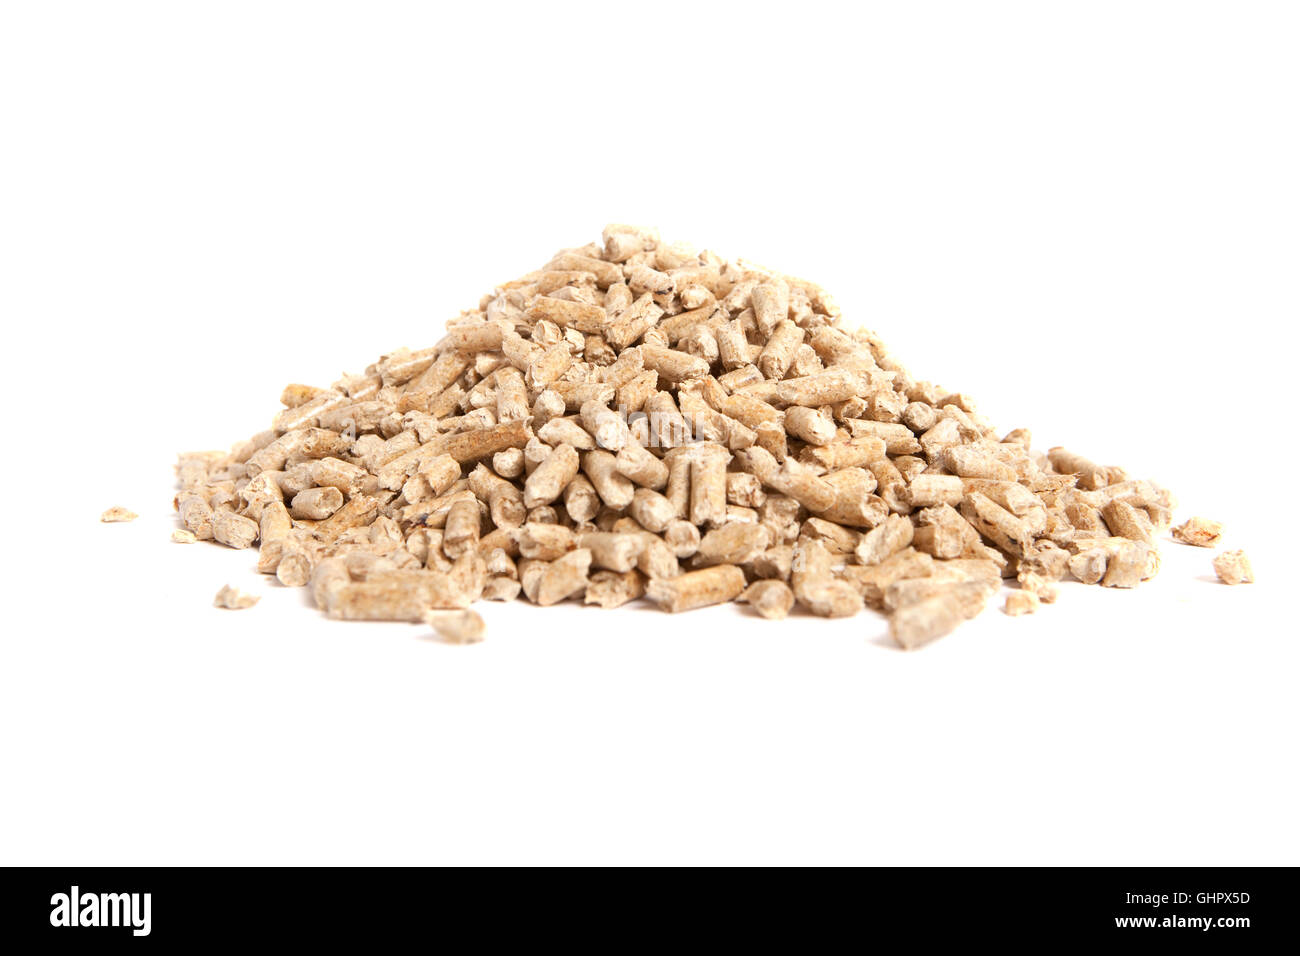 stack of wooden pellets for bio energy, white background, isolated - Stock Image